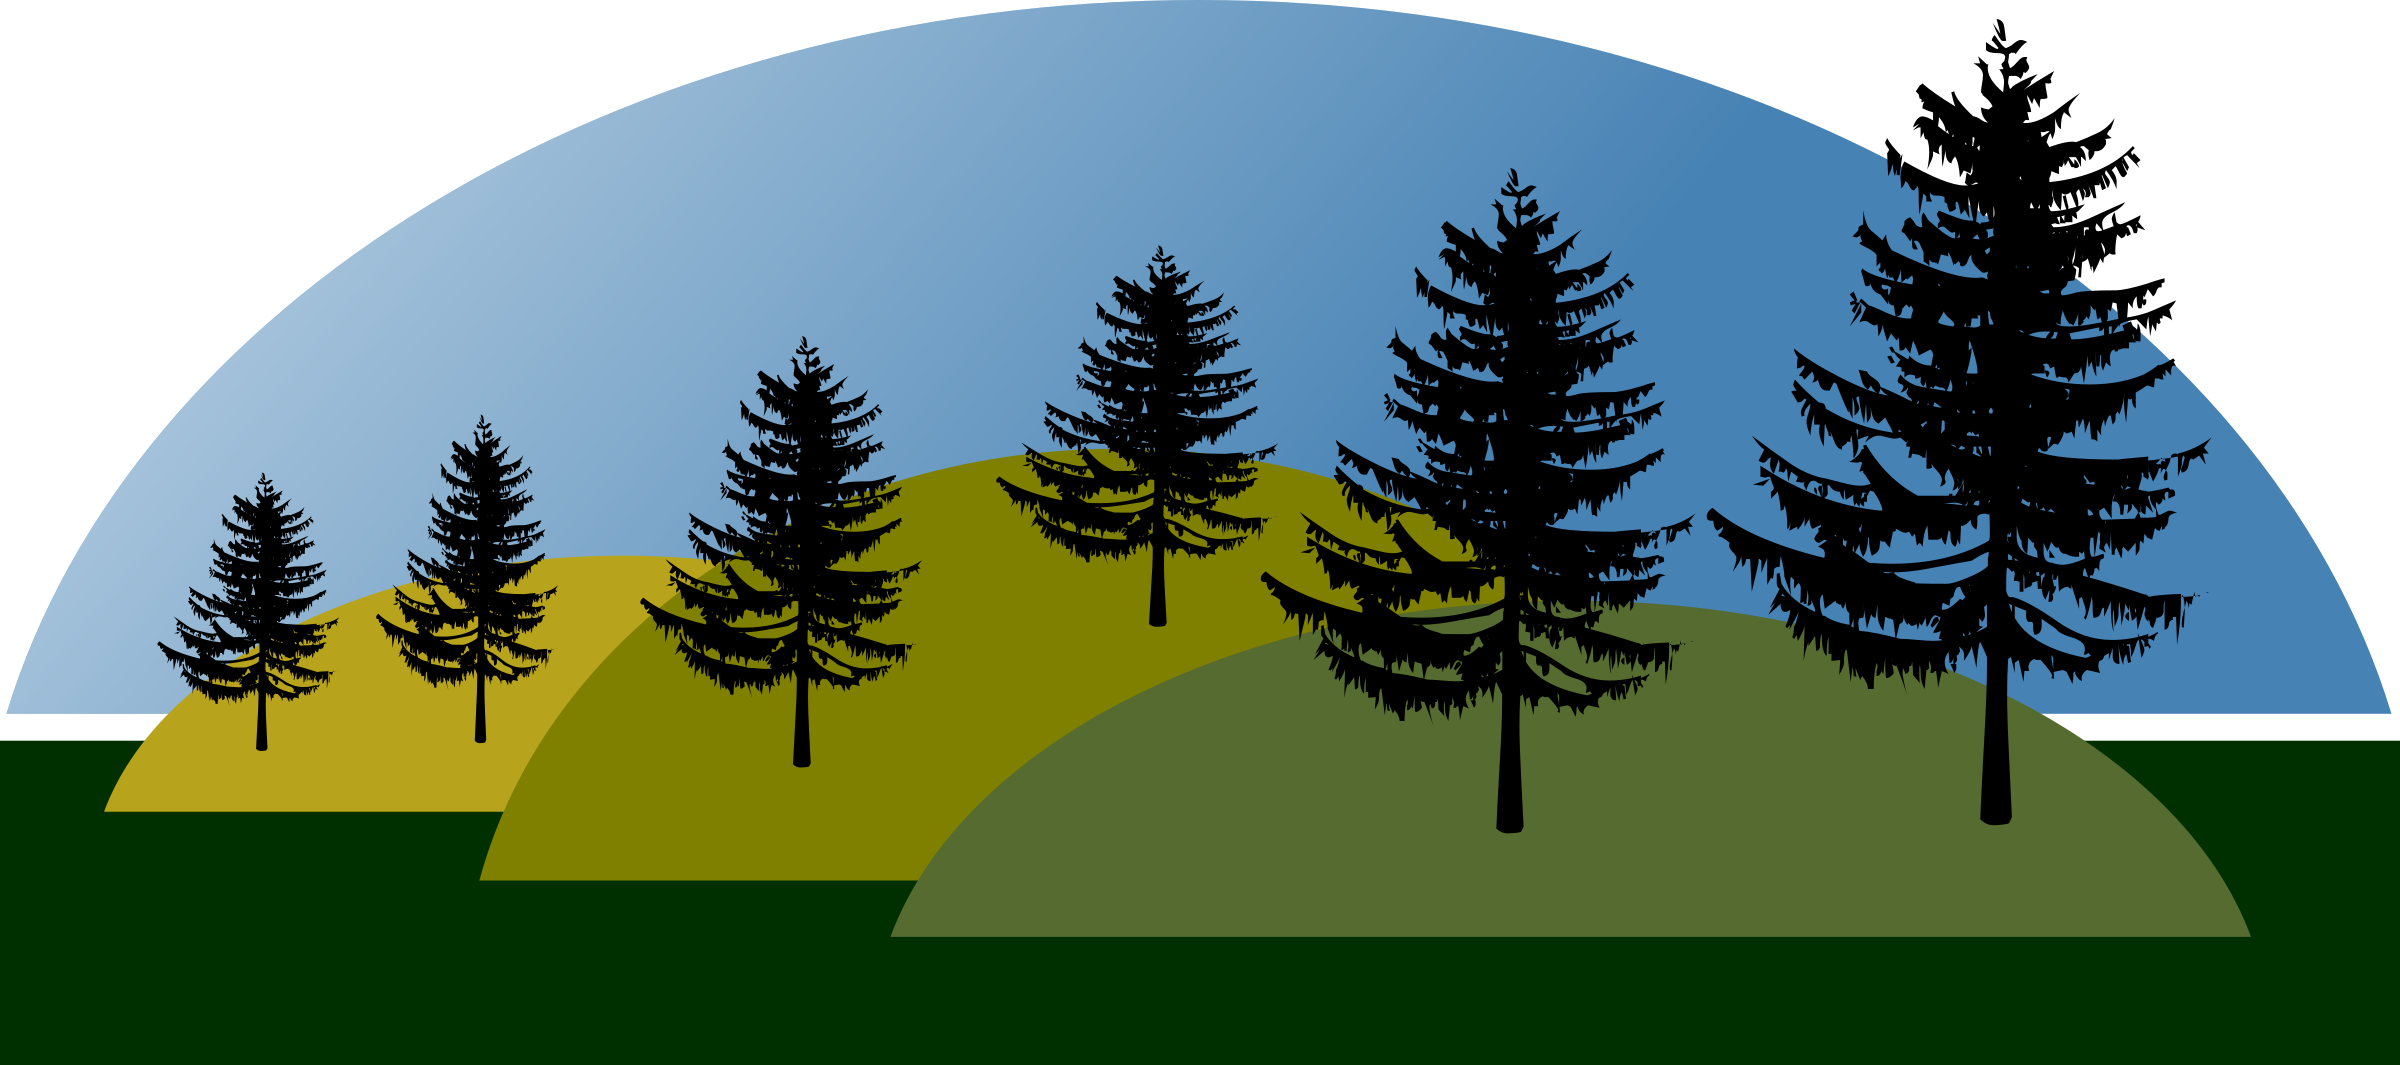 Forest clipart mountains. Montanhas big image png